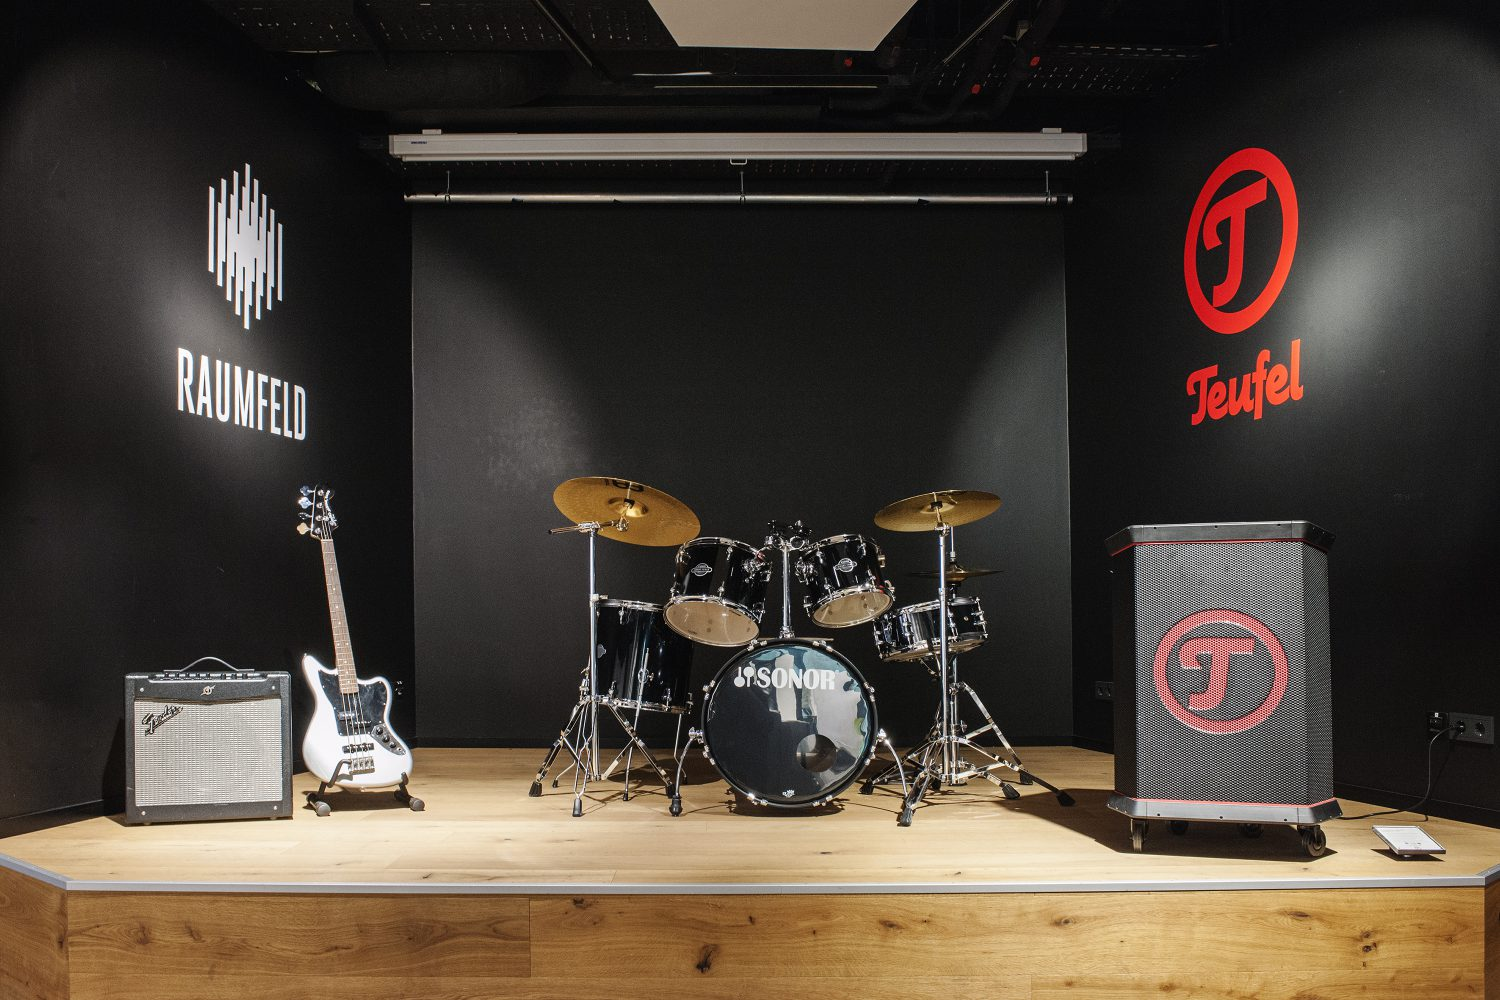 teufel mania testing out the rockster xs teufel blog. Black Bedroom Furniture Sets. Home Design Ideas